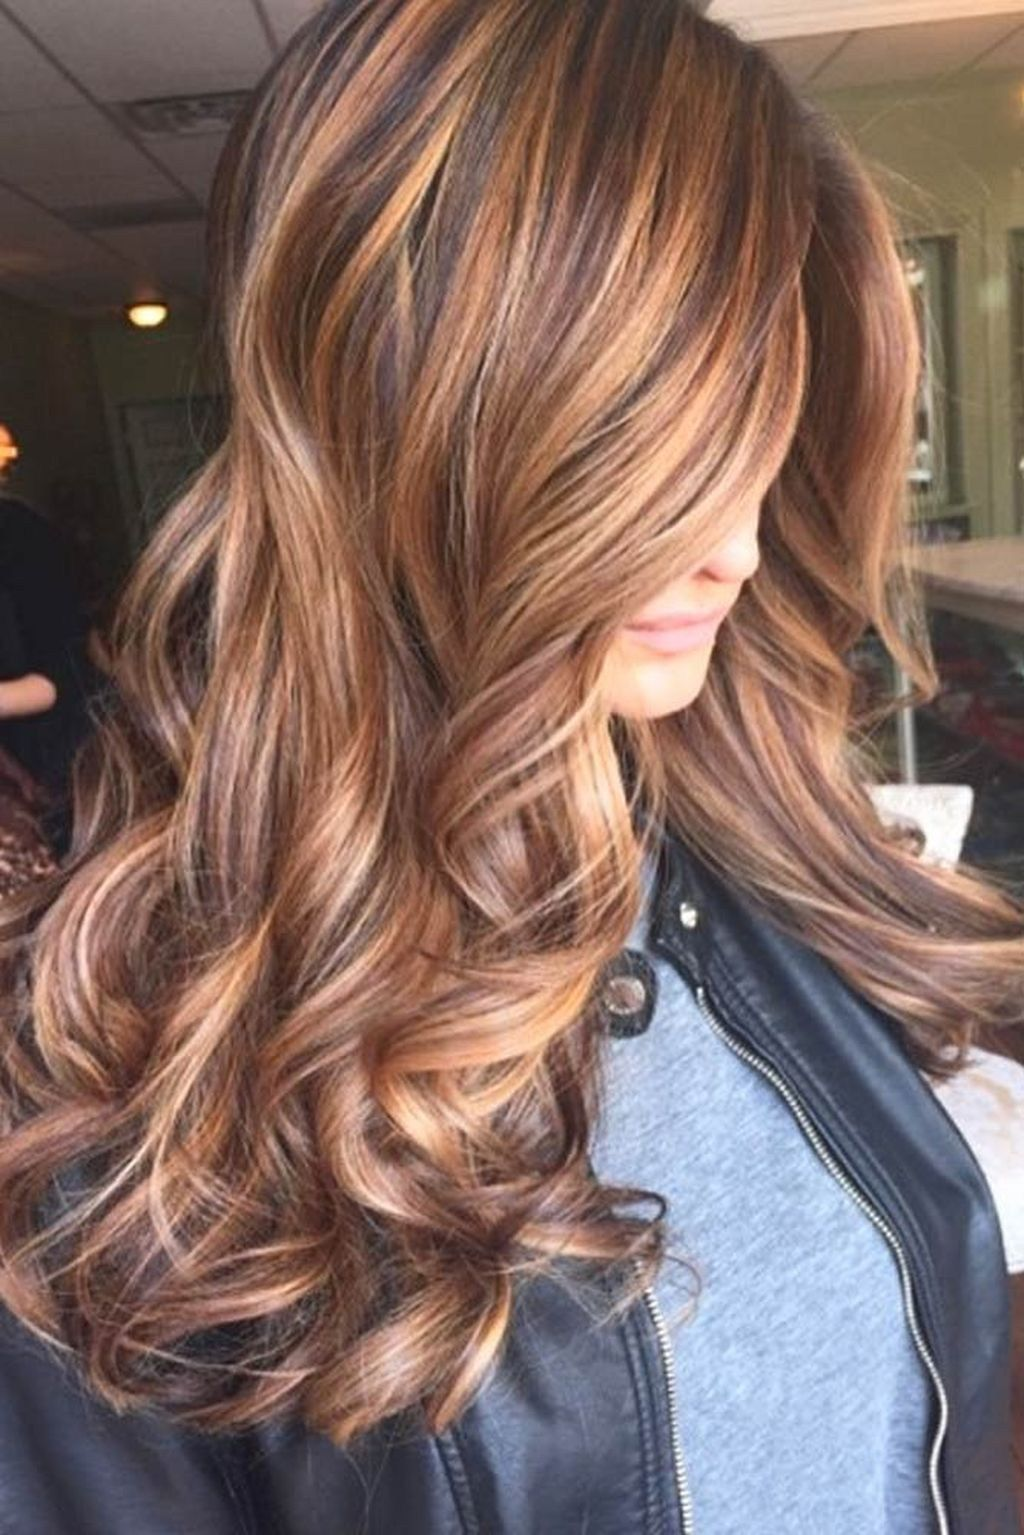 Stunning Fall Hair Color Ideas 2017 Trends 21 Aksahin Jewelry Tiger Eye Hair Color Hair Styles Balayage Hair